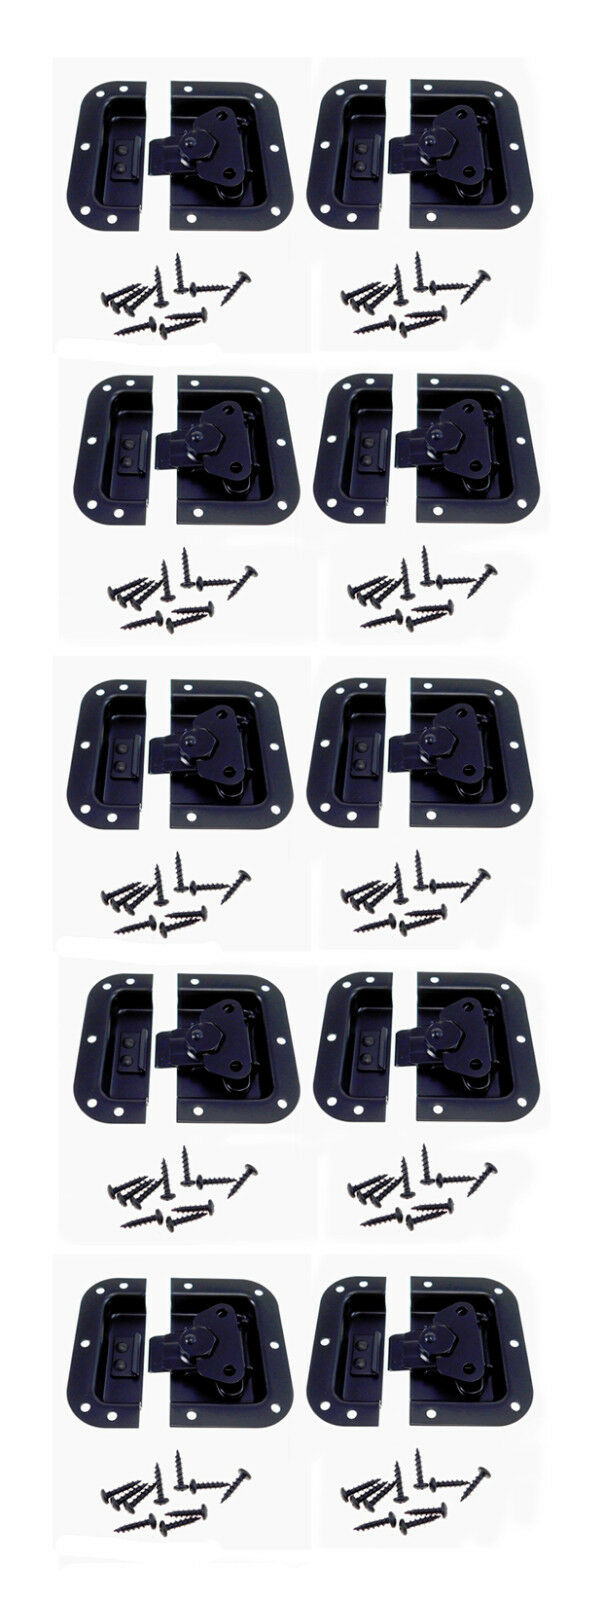 10 Pack schwarz Finish Medium Recessed Butterfly Latch Pedal Cases A3020BK